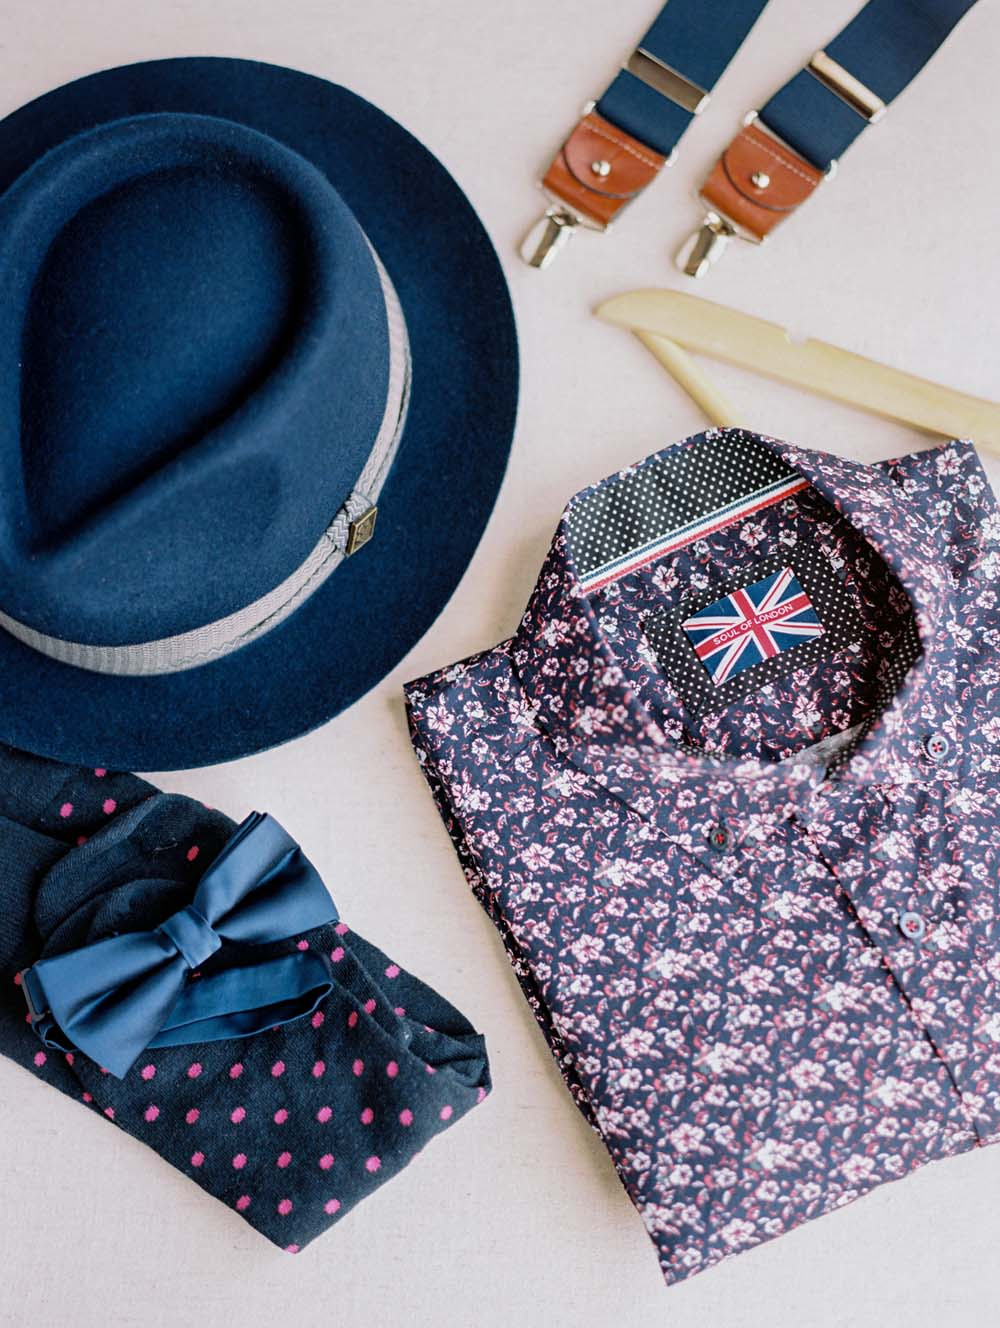 A Quirky Non-Traditional Wedding in Kitchener, Ontario - Groom's attire